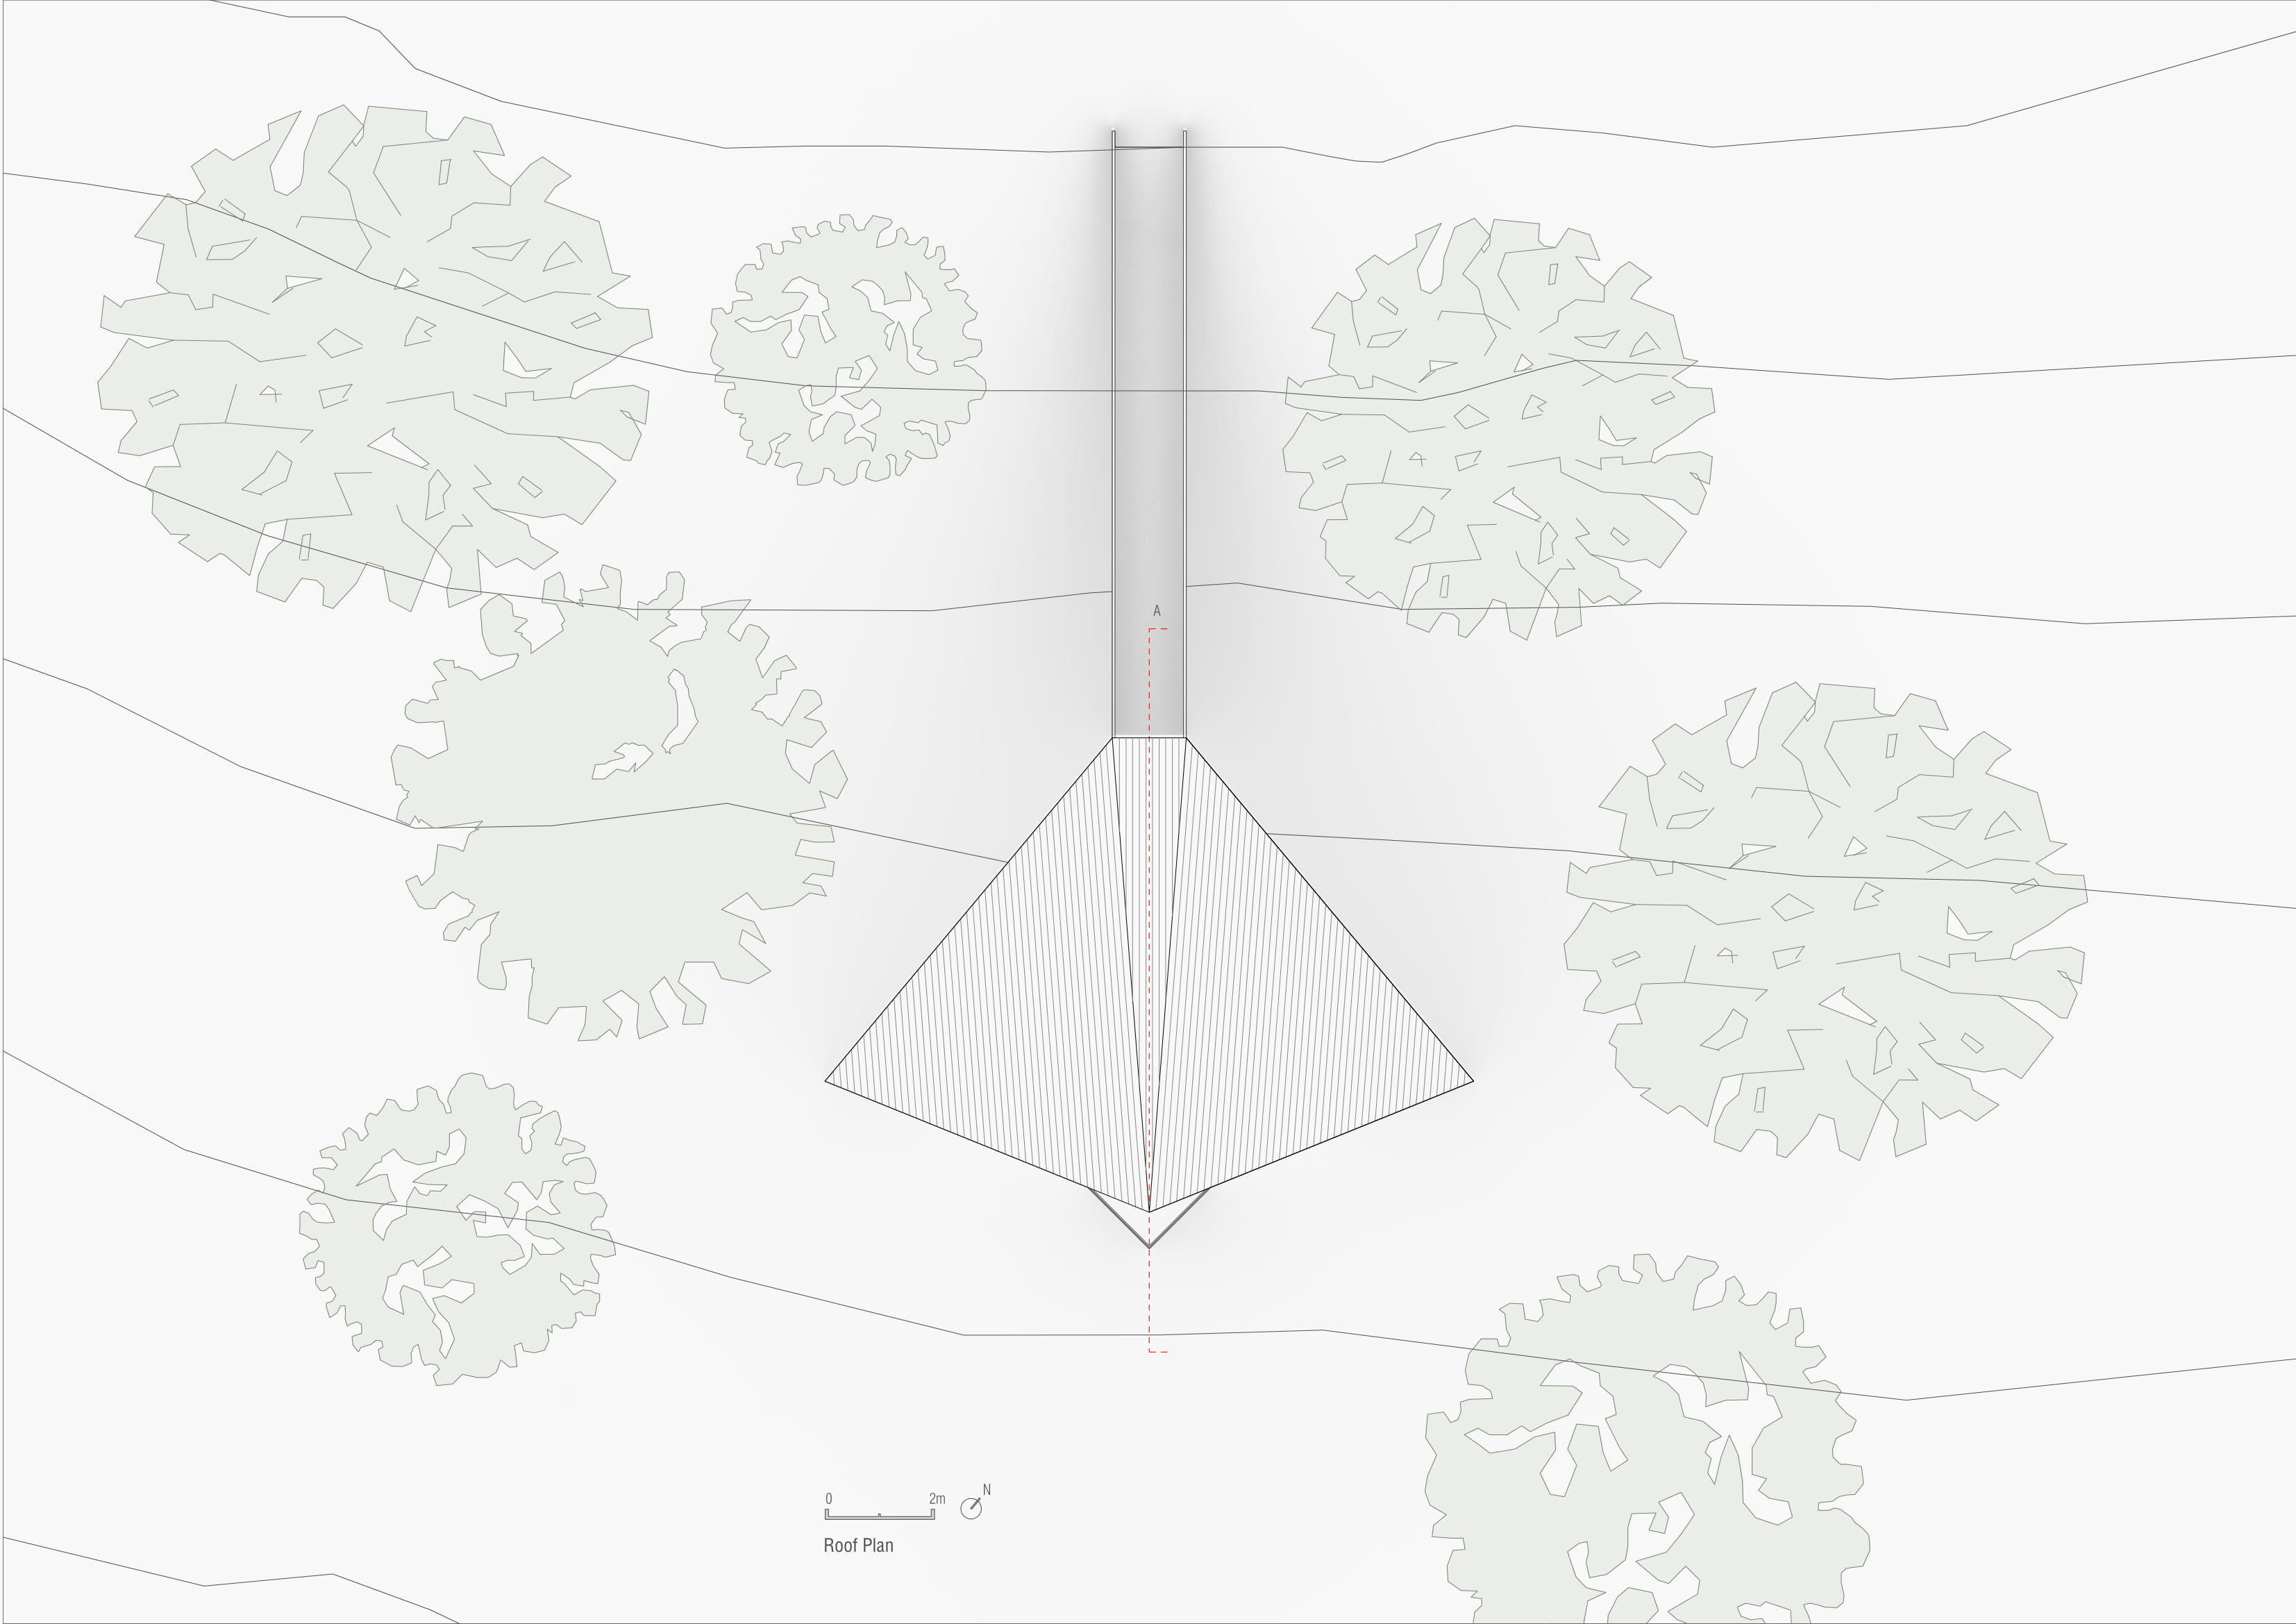 Roof plan Peter Pichler Architecture}